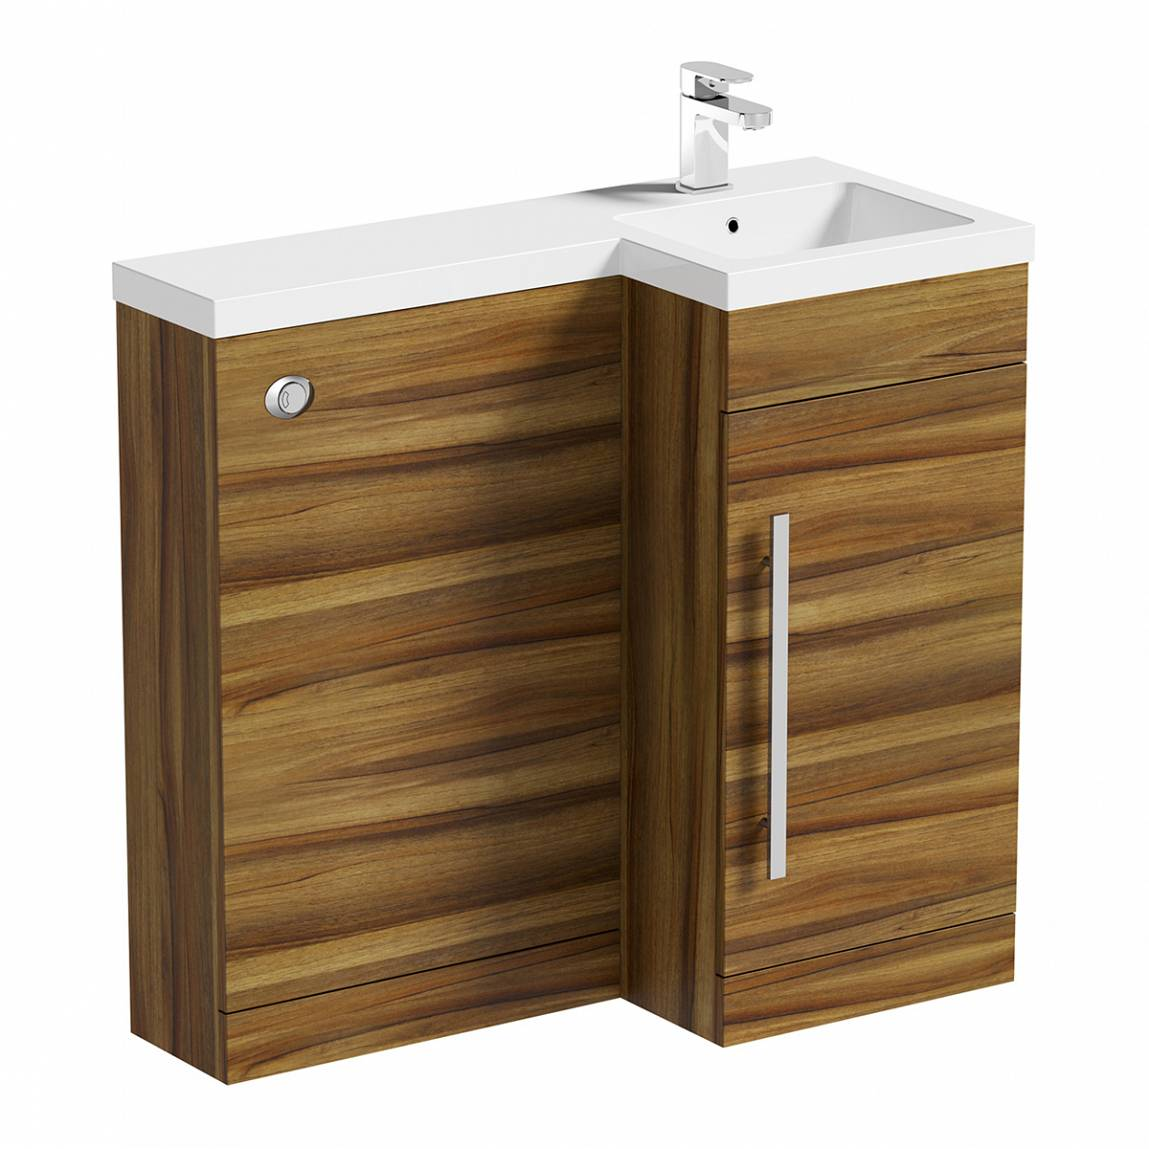 Image of MySpace Walnut Combination Unit RH including Concealed Cistern